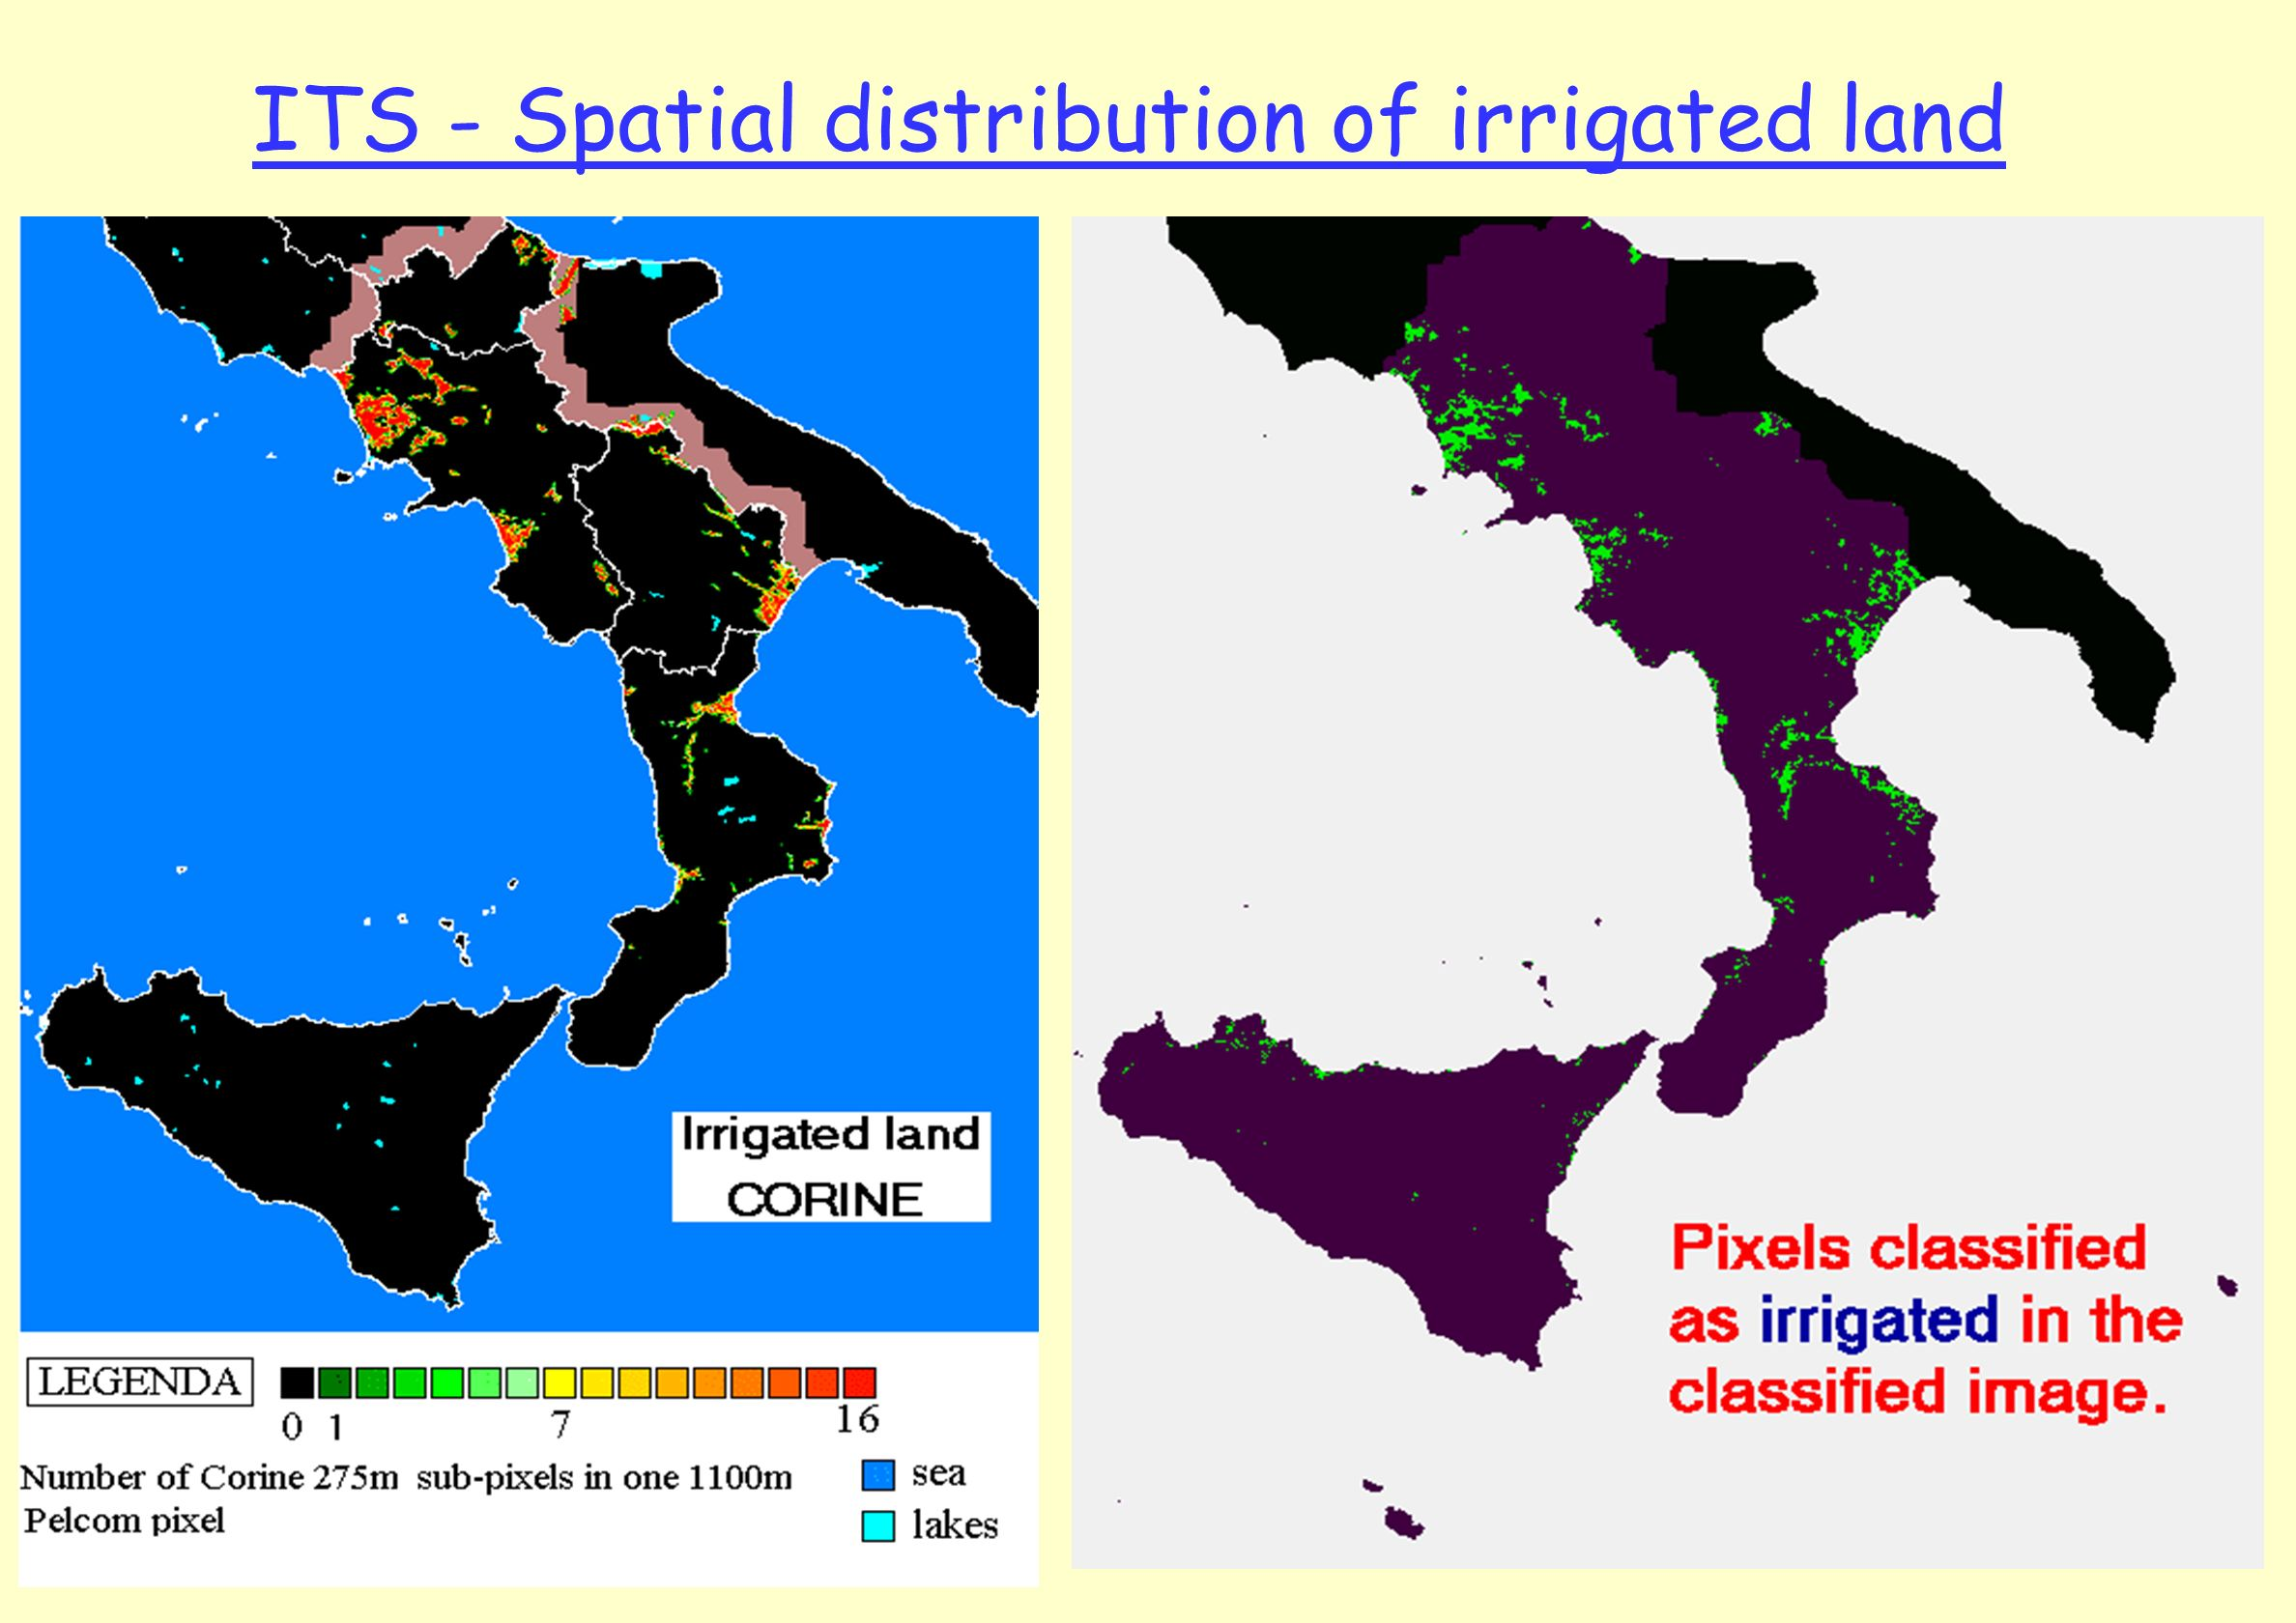 ITS - Spatial distribution of irrigated land